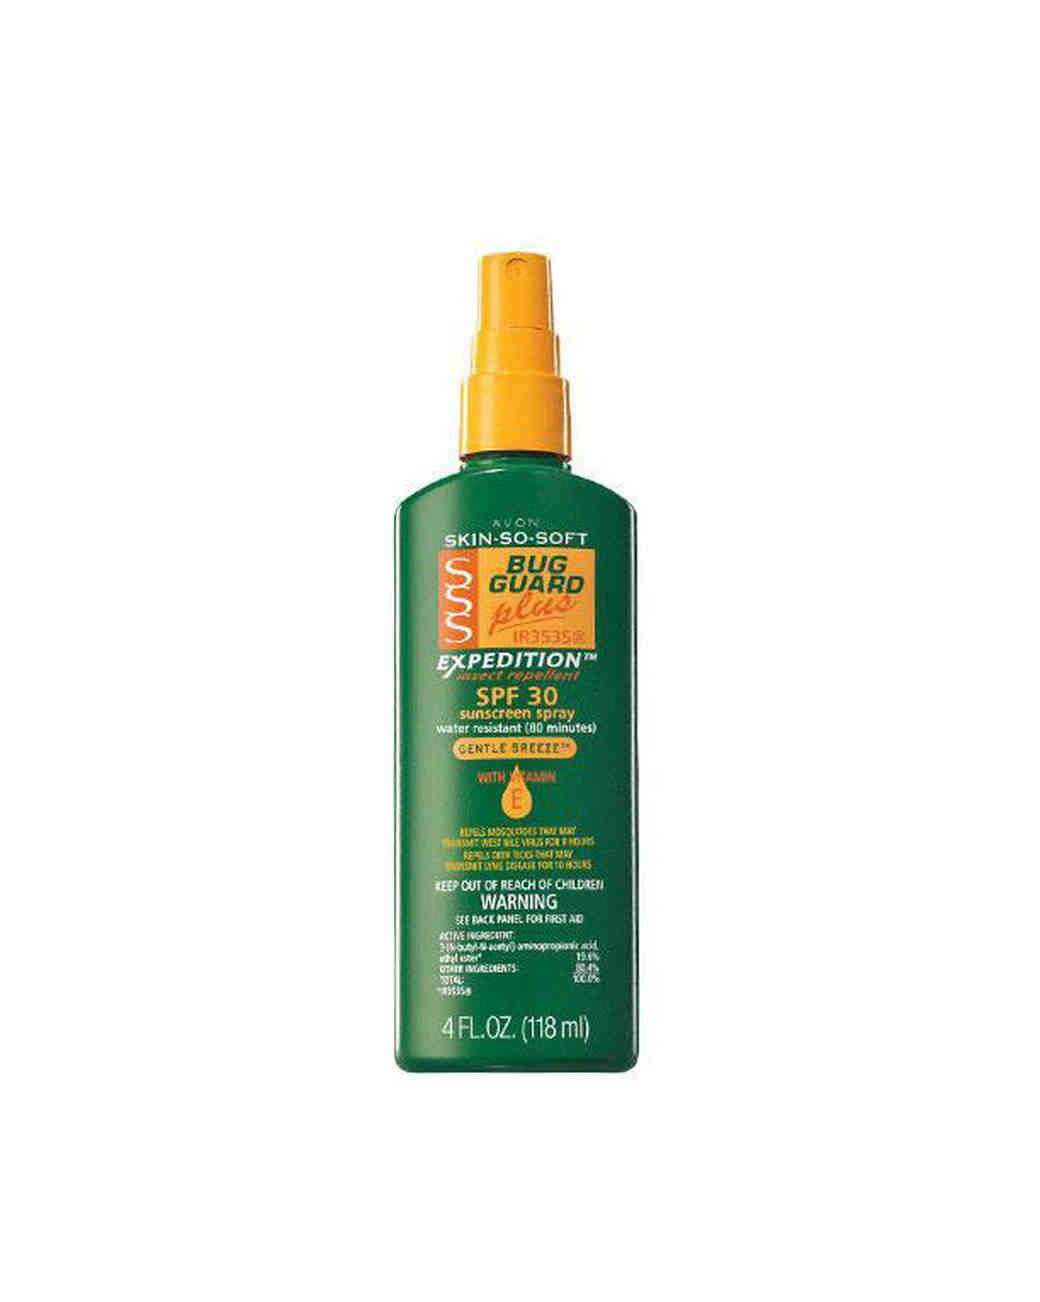 Avon Skin-So-Soft Bug Guard Plus SPF